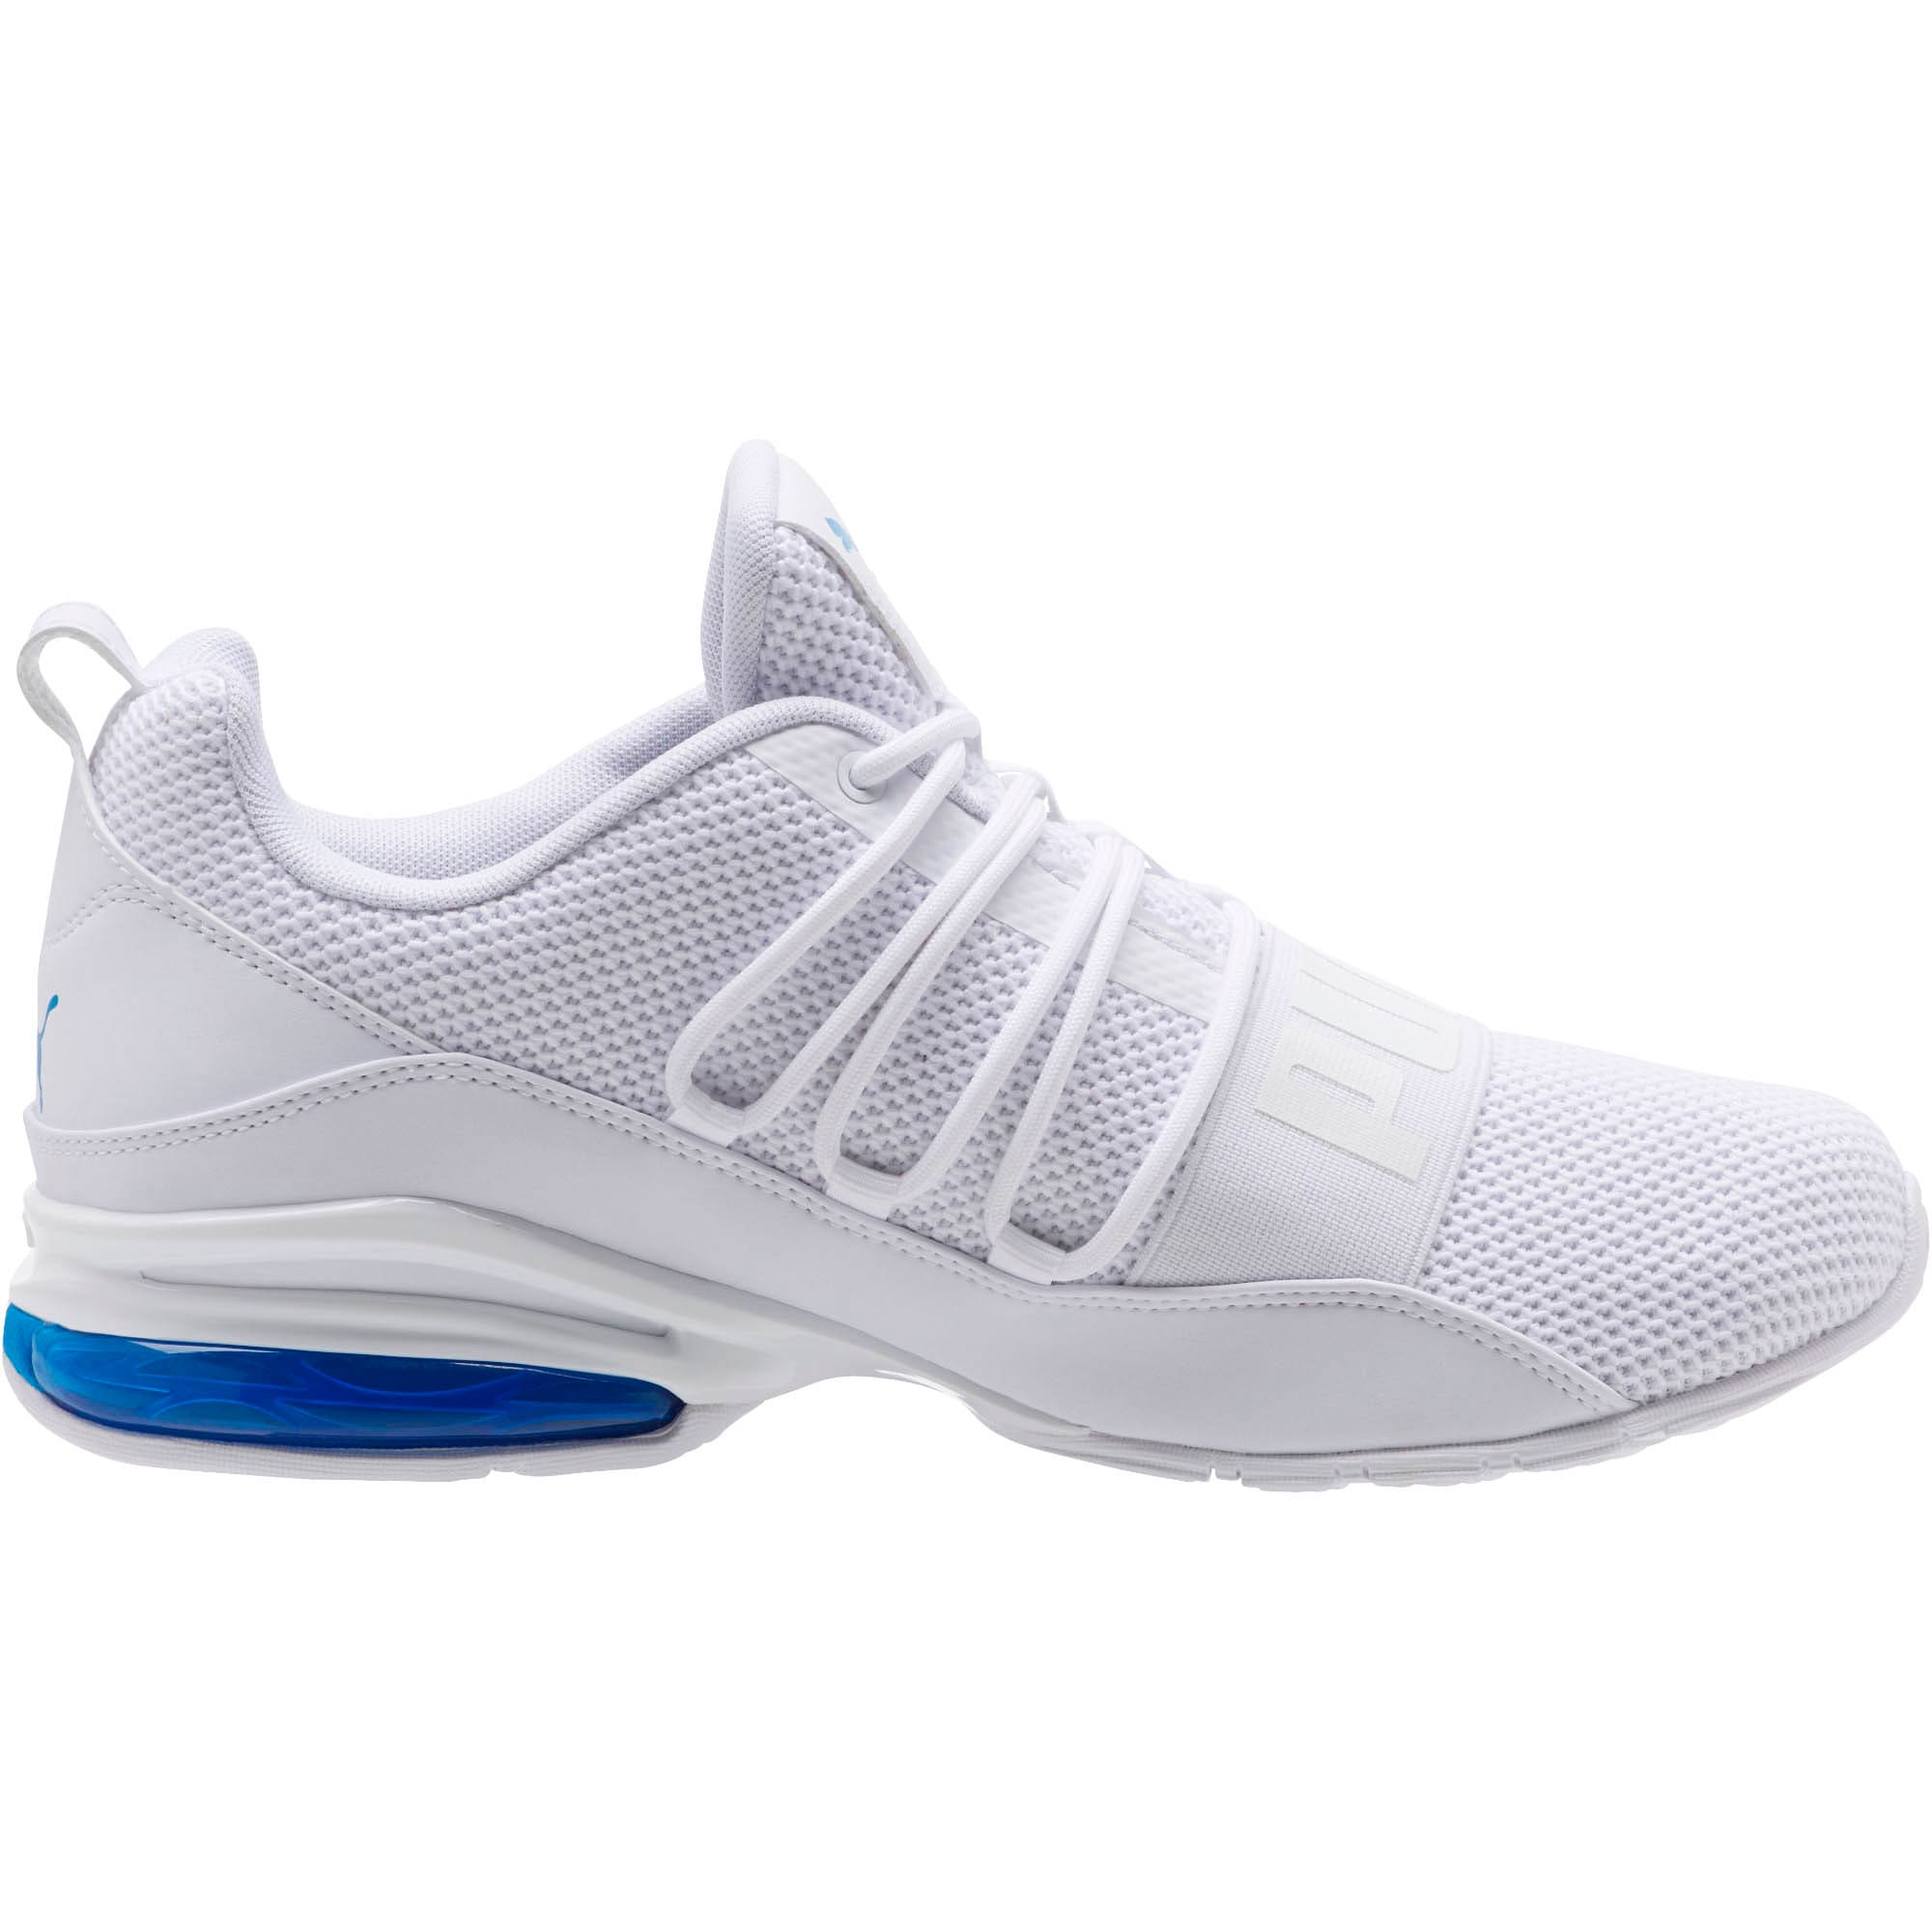 Thumbnail 3 of CELL Regulate Woven Men's Running Shoes, Puma White-Indigo Bunting, medium